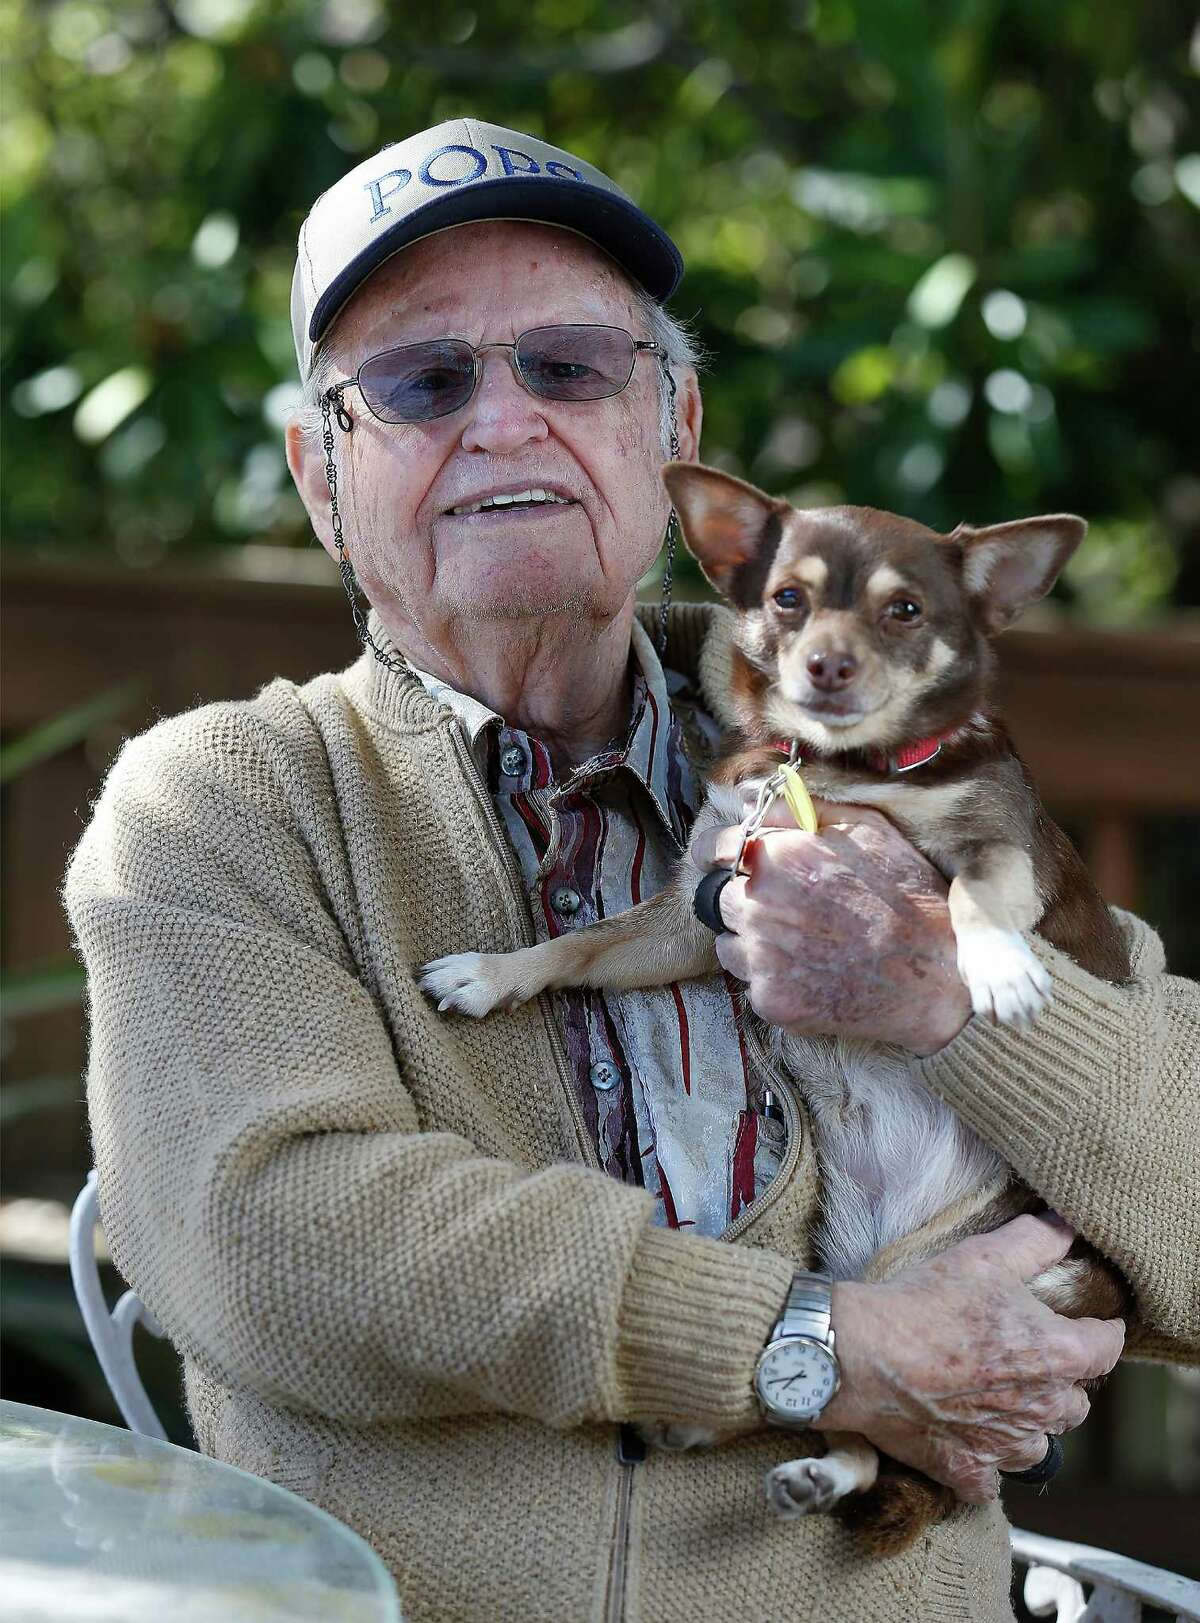 Six years ago, Edgar Fischel had his beloved female Chihuahua named Little Girl stolen out of his car when running an errand. But thanks to an embedded microchip on the Chihuahua, Fischel, 89, was reunited with his pet. Little Girl hardly ever leaves his side and shows affection toward Fischel at every opportunity. Fischel now enjoys the company of Little Girl and his other Chihuahua, Little Boy, which he adopted a year after Little Girl went missing. The retired educator loves the company of both his Chihuahuas. (Kin Man Hui/San Antonio Express-News)